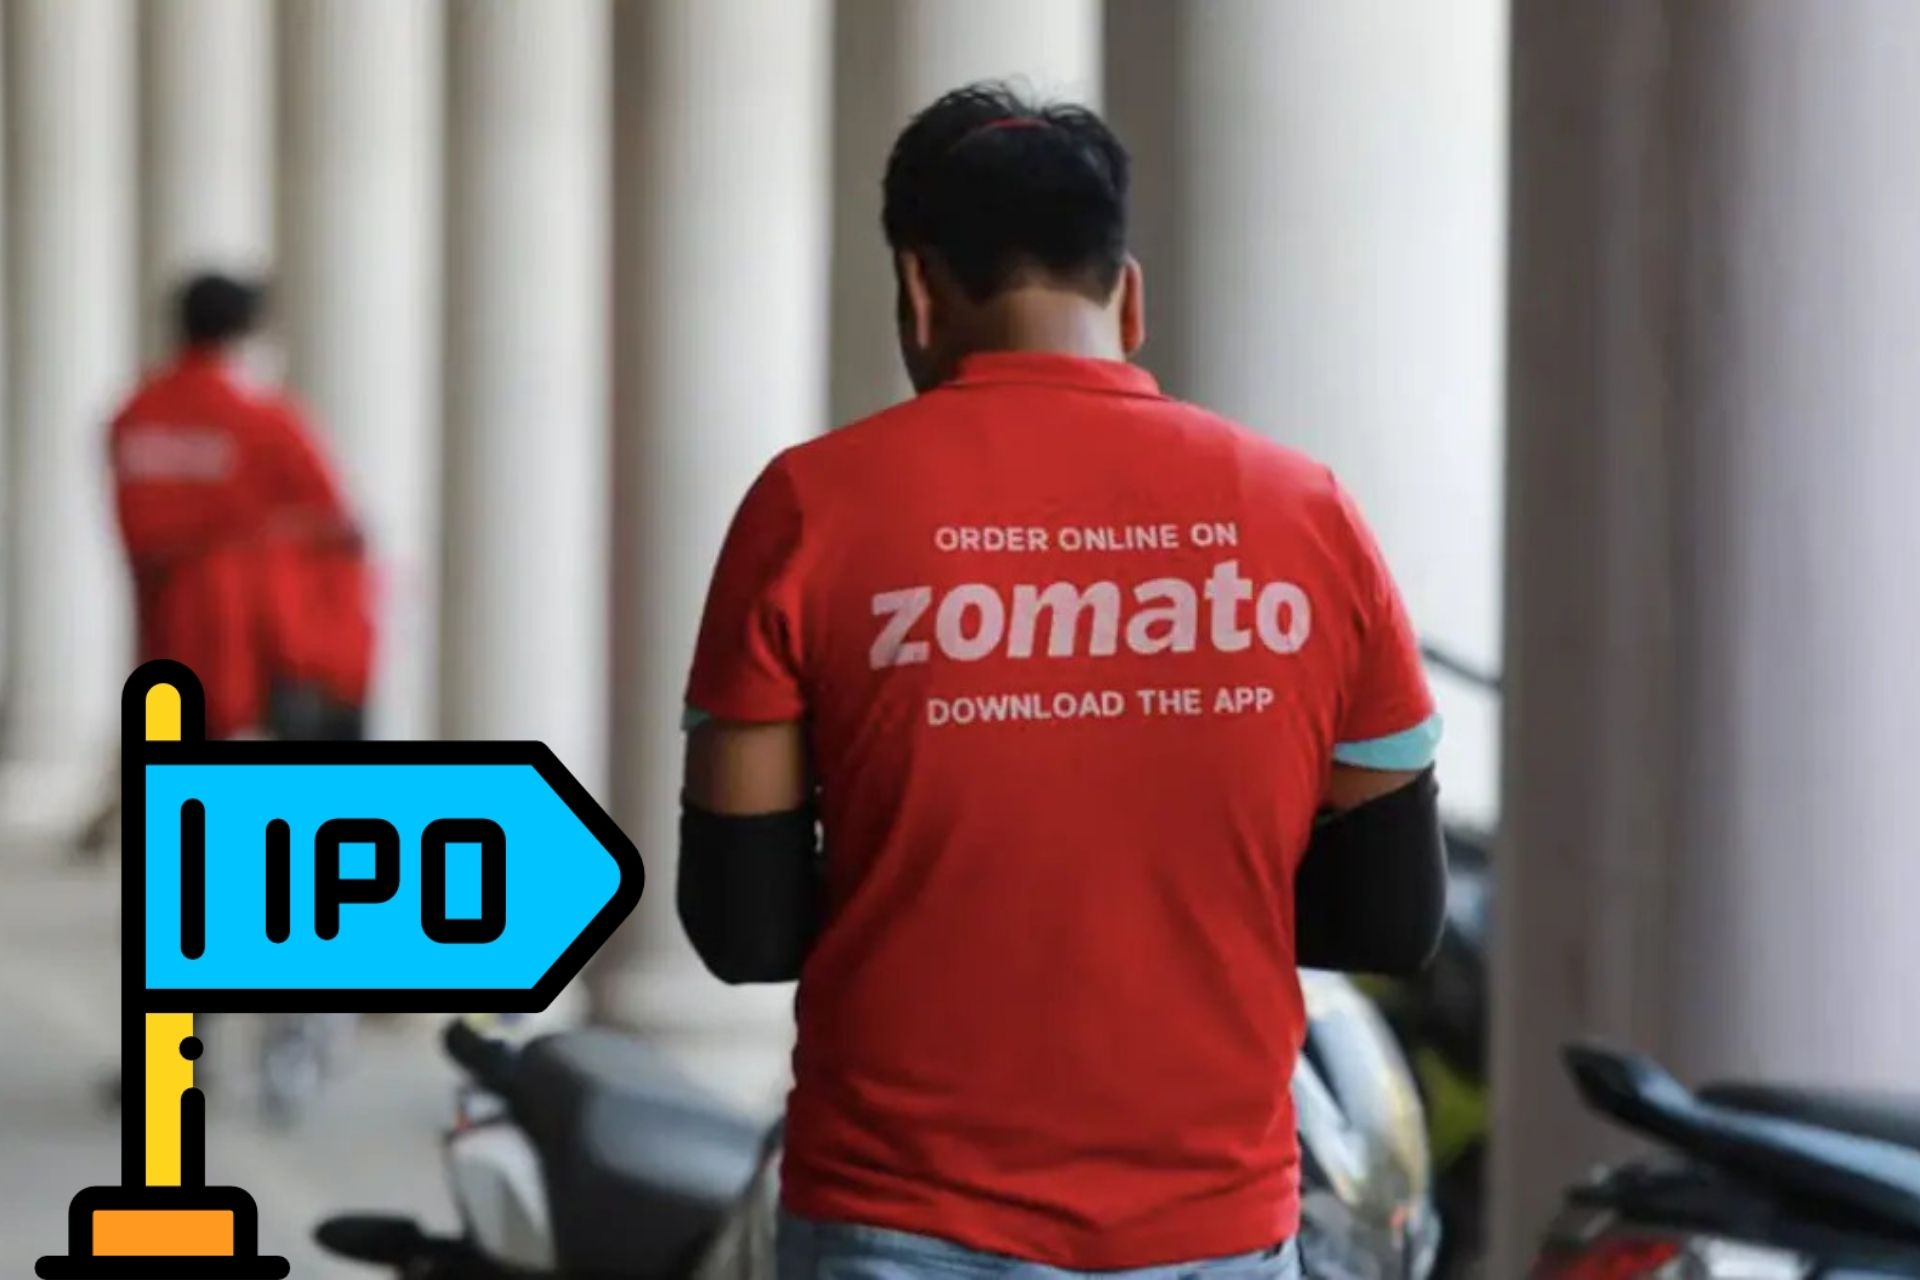 Zomato's stock price finishes the 1st day of trading at Rs 126, up 66 % from the IPO price